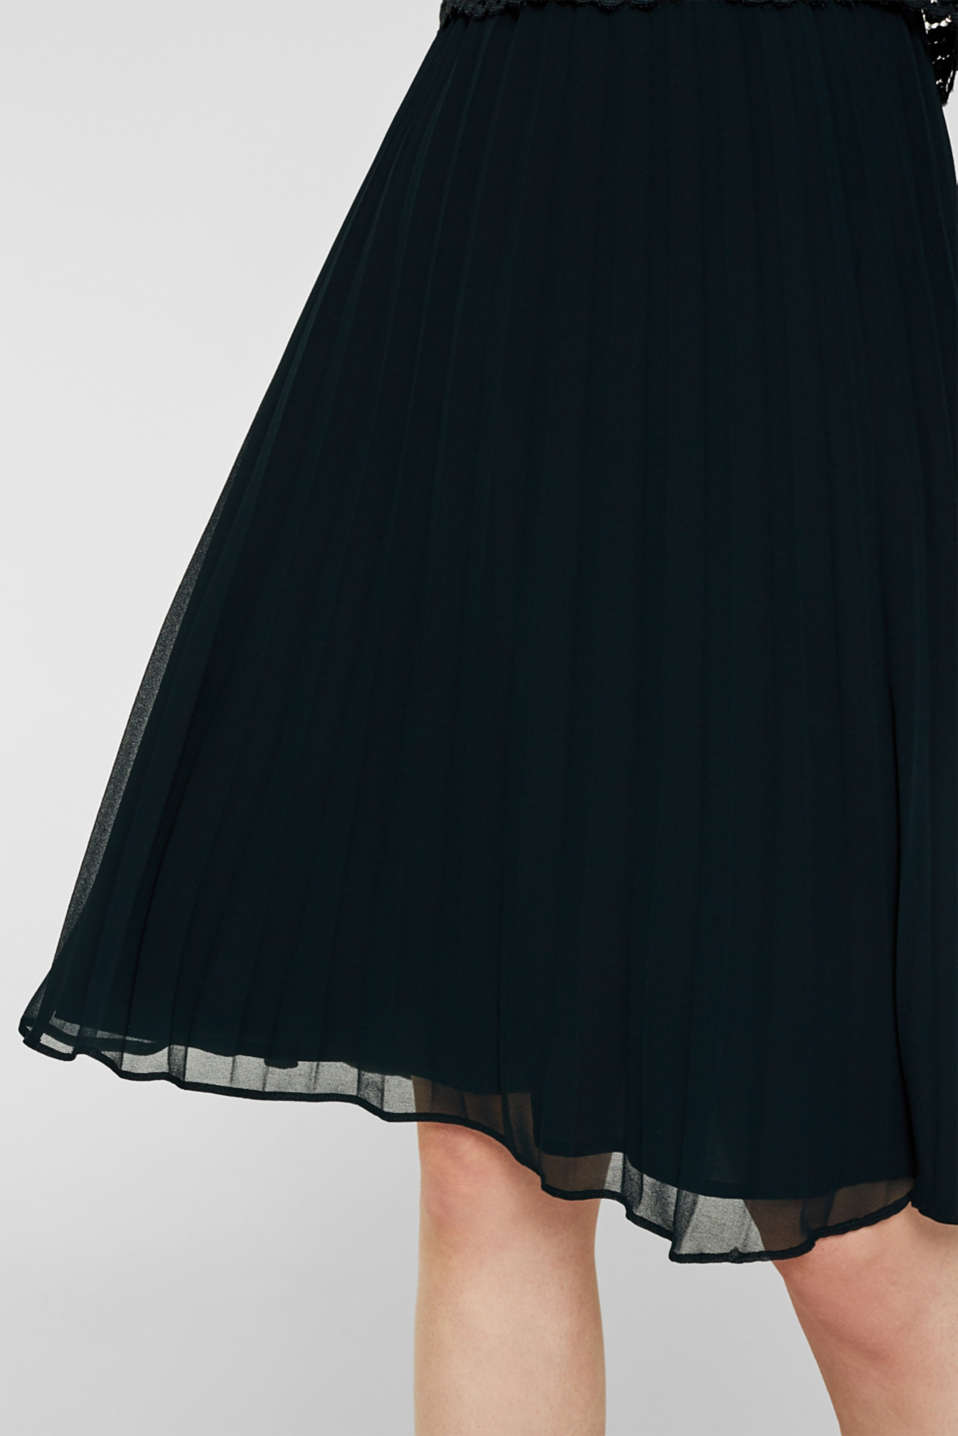 Lace dress with a pleated skirt, DARK TEAL GREEN, detail image number 3